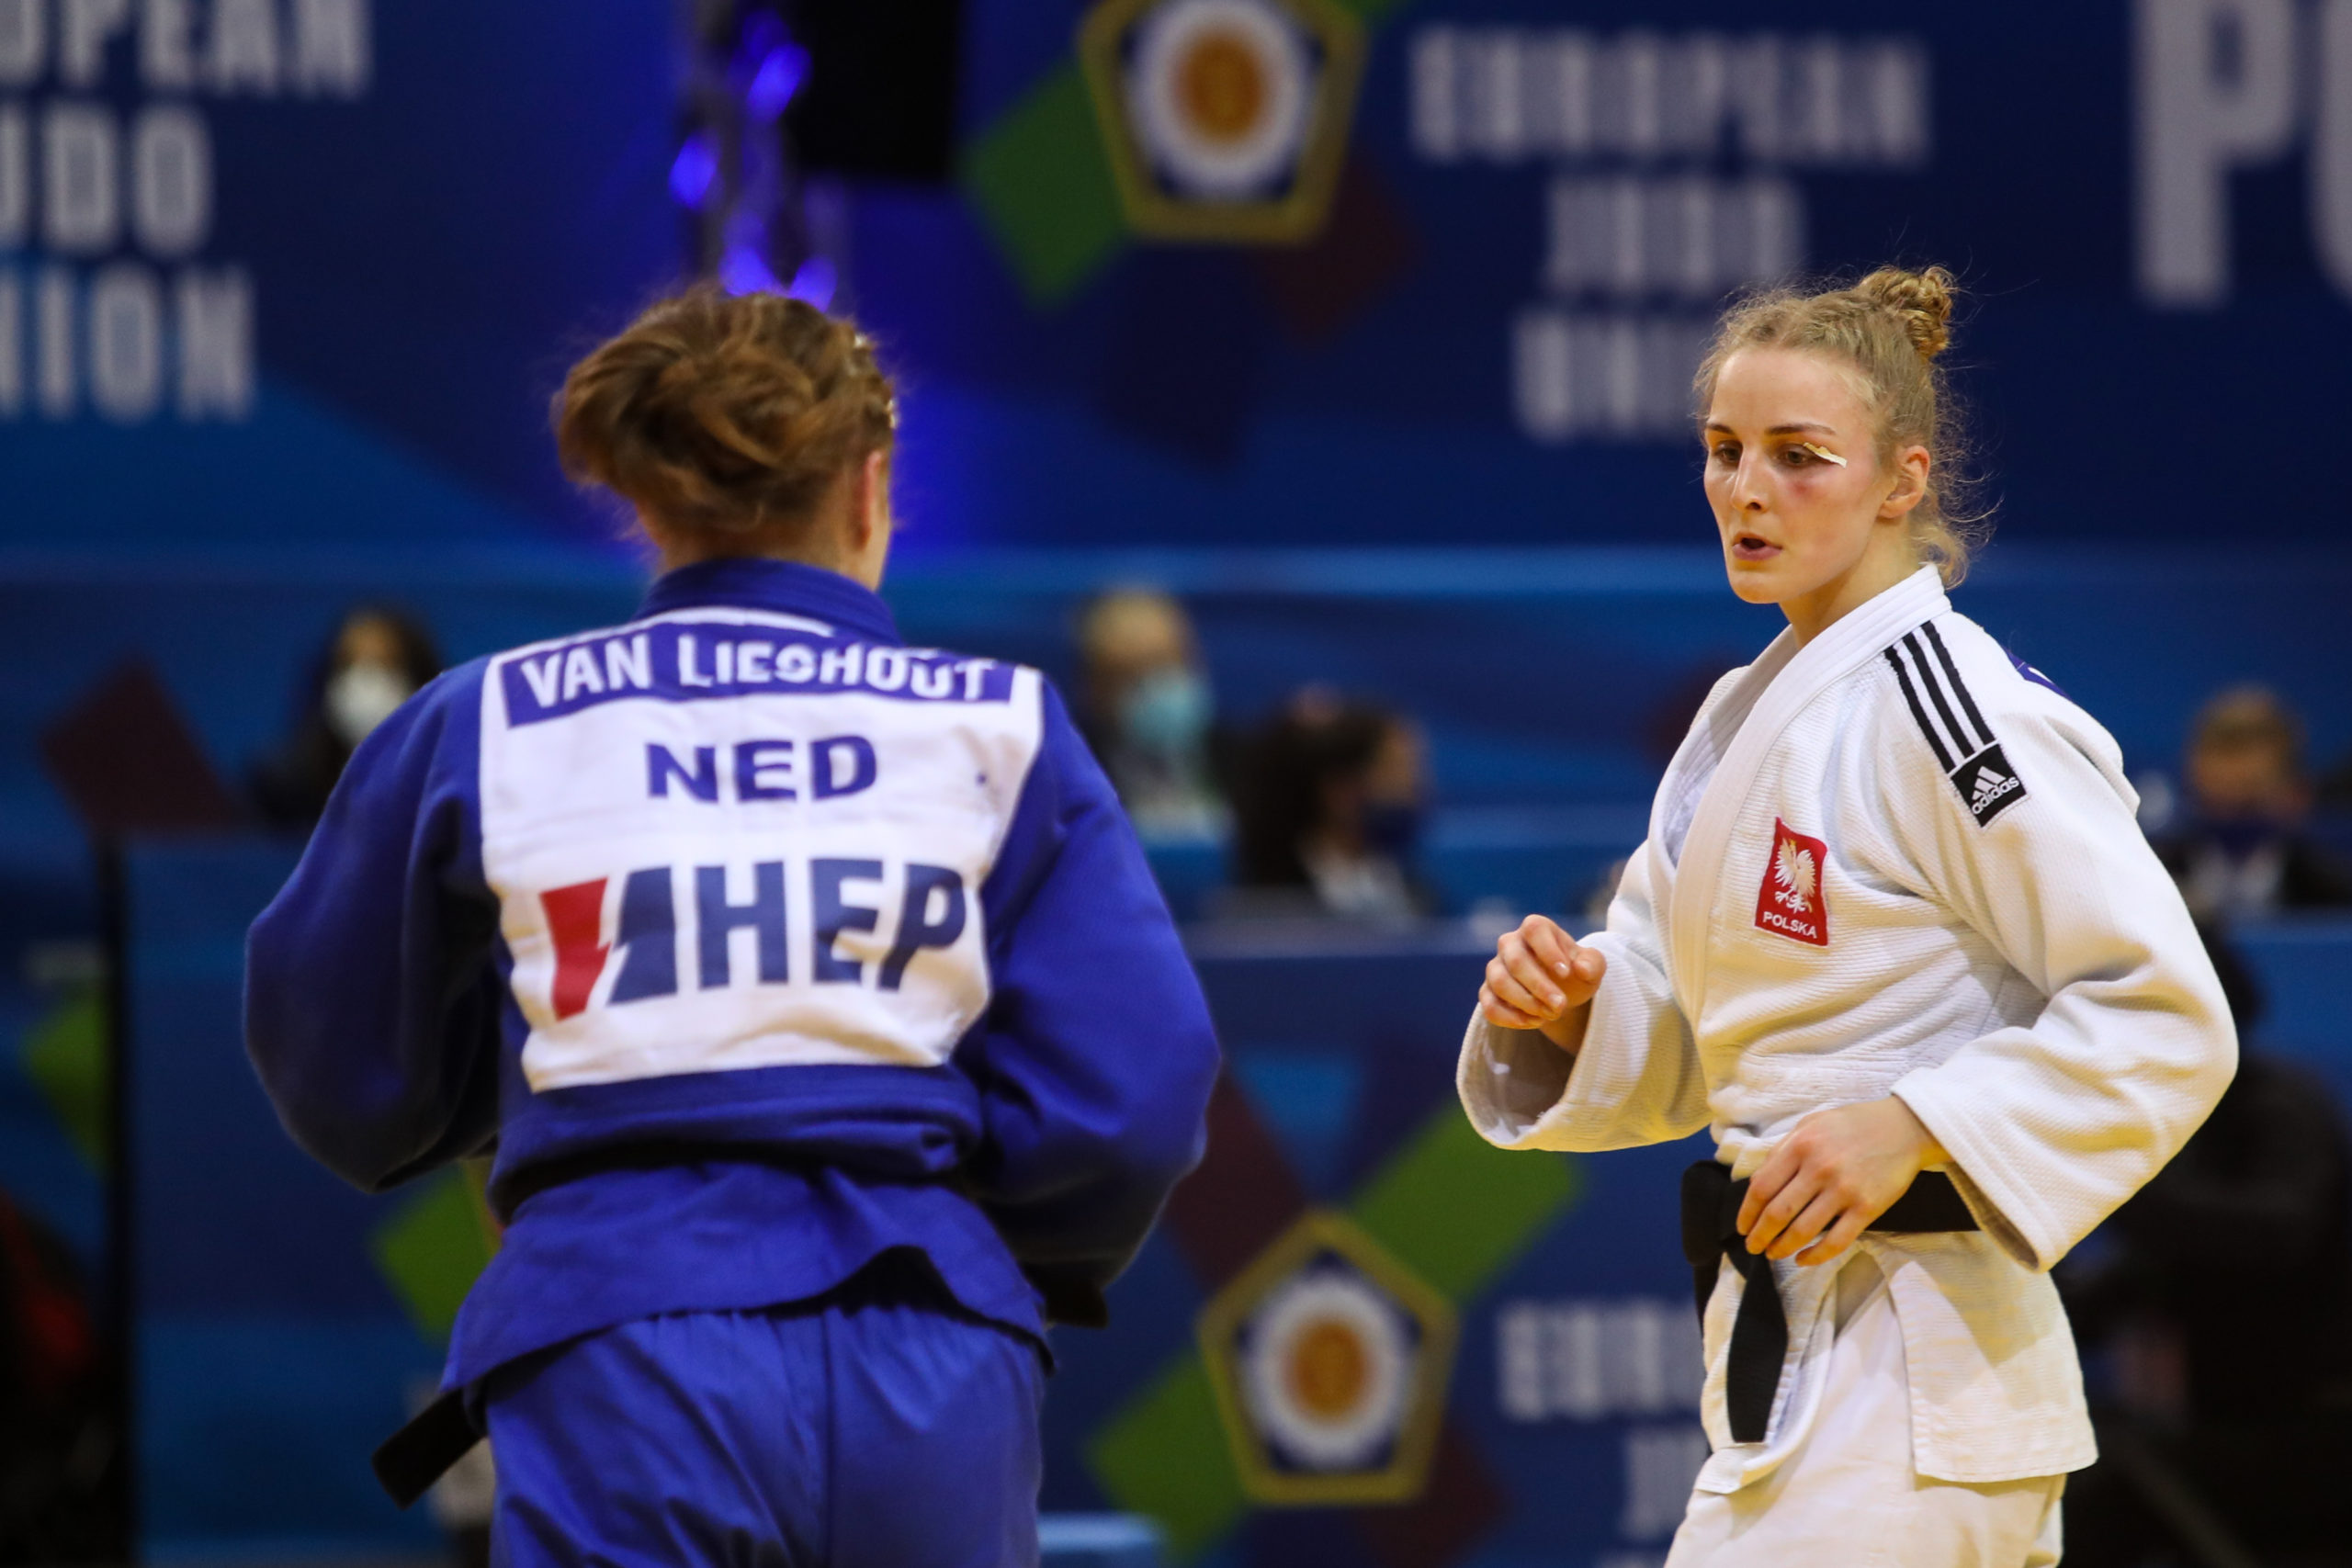 YOUNGEST ENTRY VAN LIESHOUT TAKES GOLD FOR NETHERLANDS